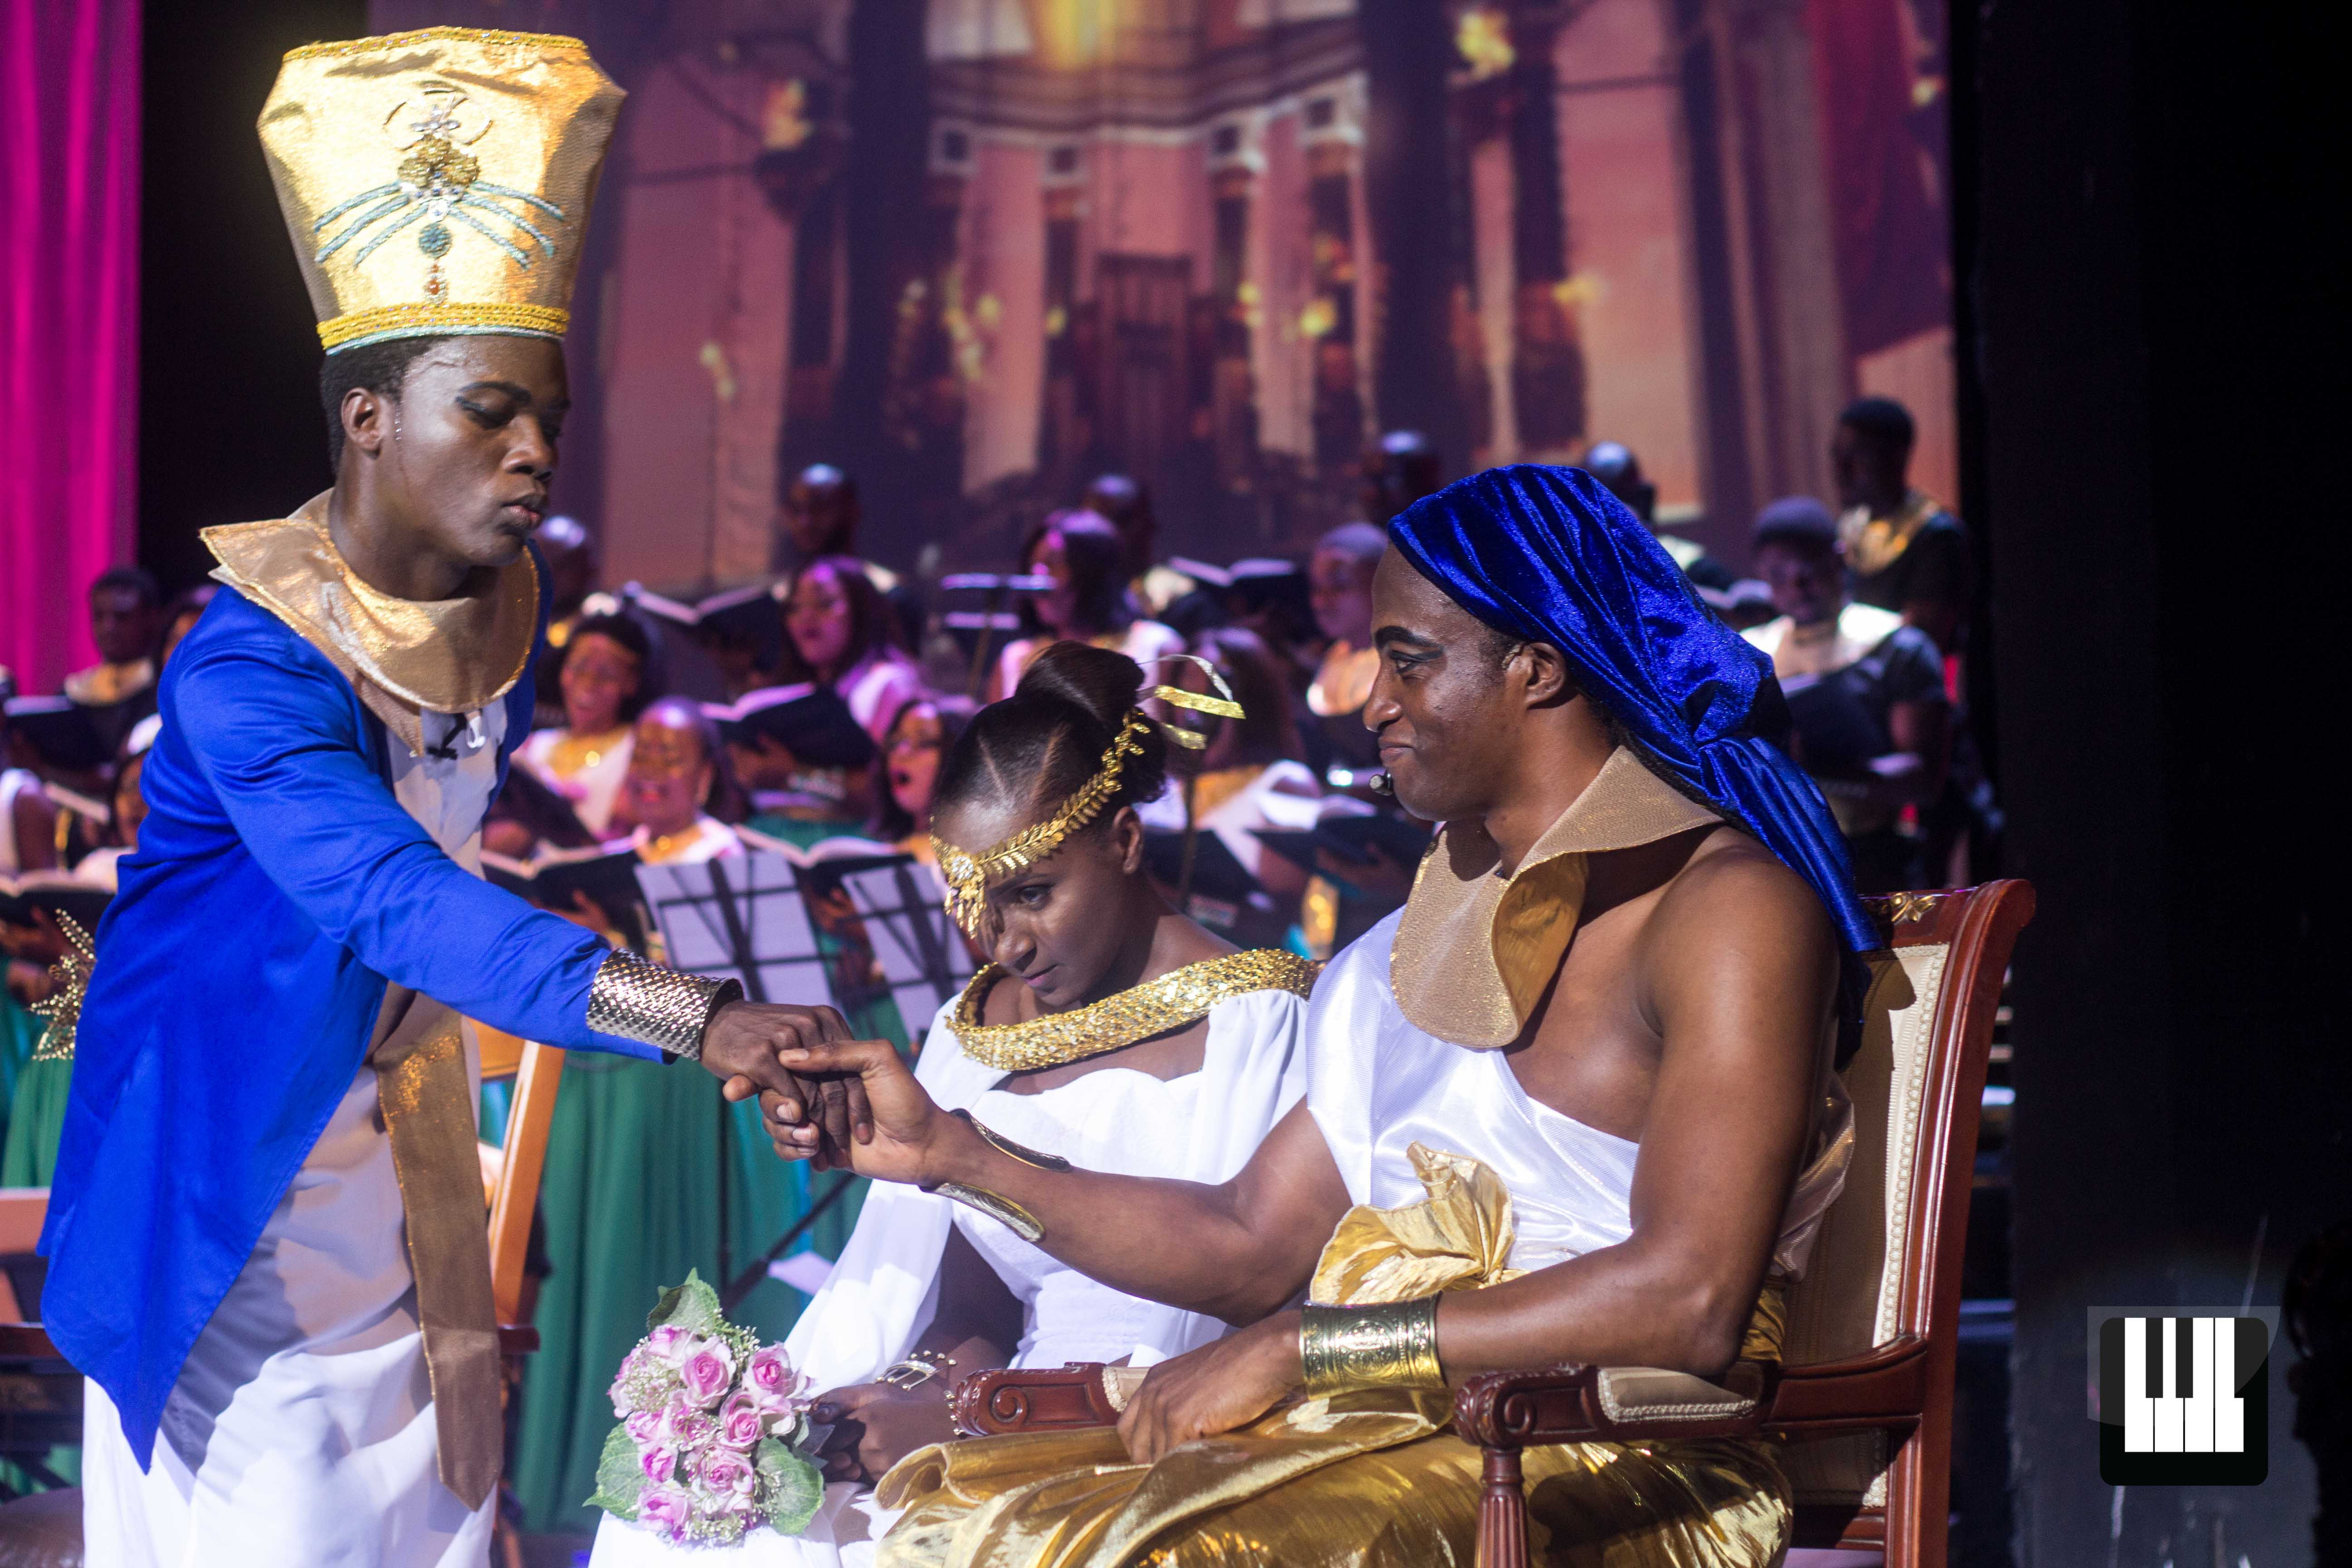 Joseph and His Brethren James Varrick Armaah led Harmonious Chorale in a historic performance of Handel's Joseph and his Brethren in Accra. Choral Music Ghana takes a look at the performance and what it means for Ghanaian music.